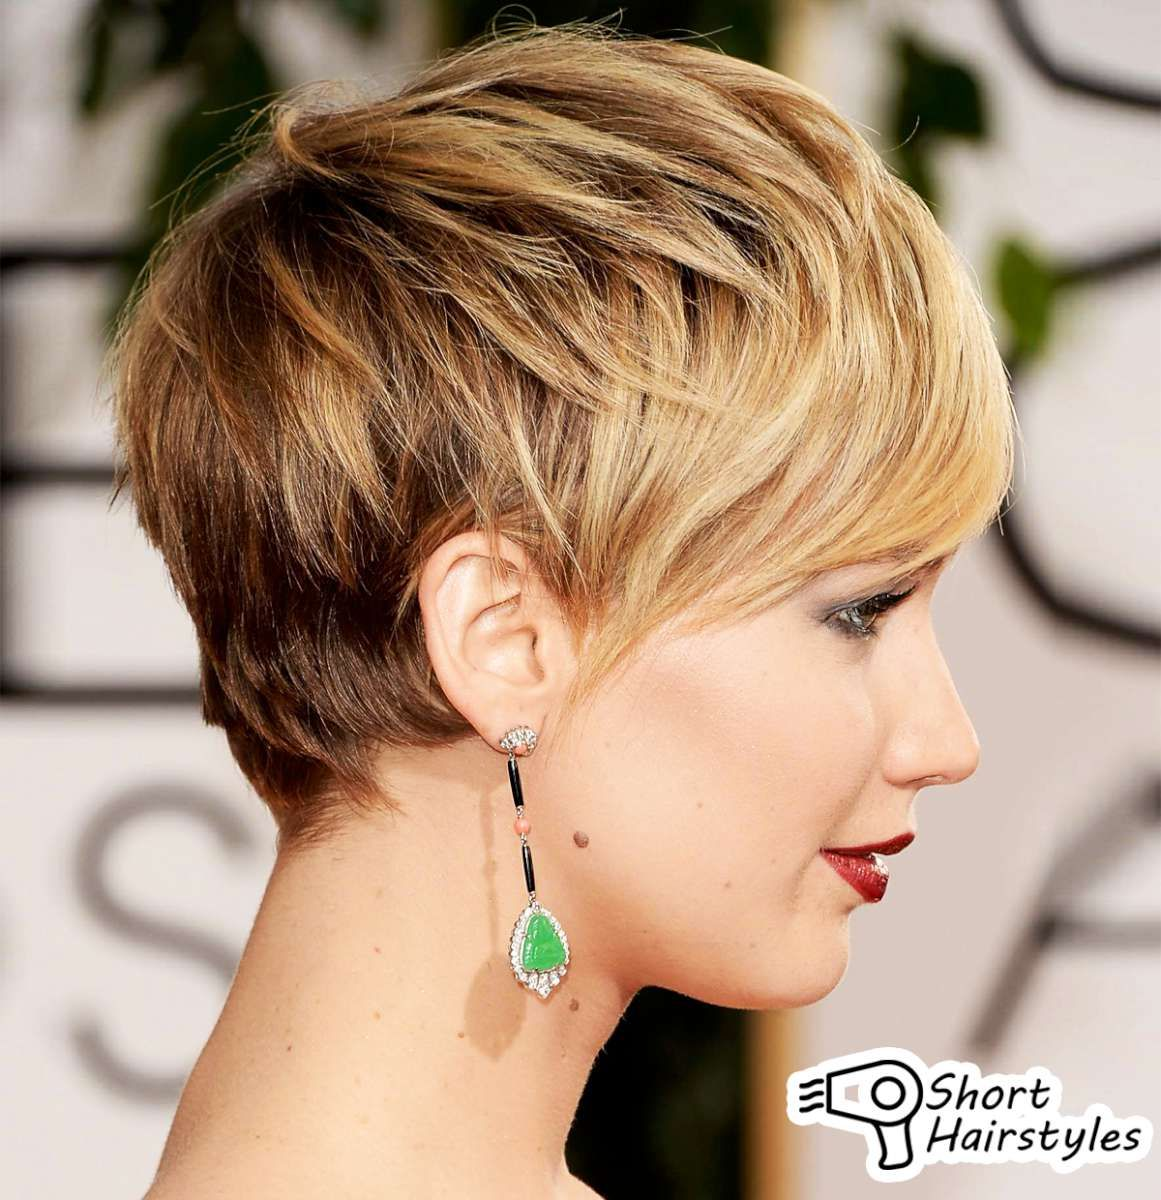 short+hairstyles+2014 | short hairstyles pictures for fine hair 2014